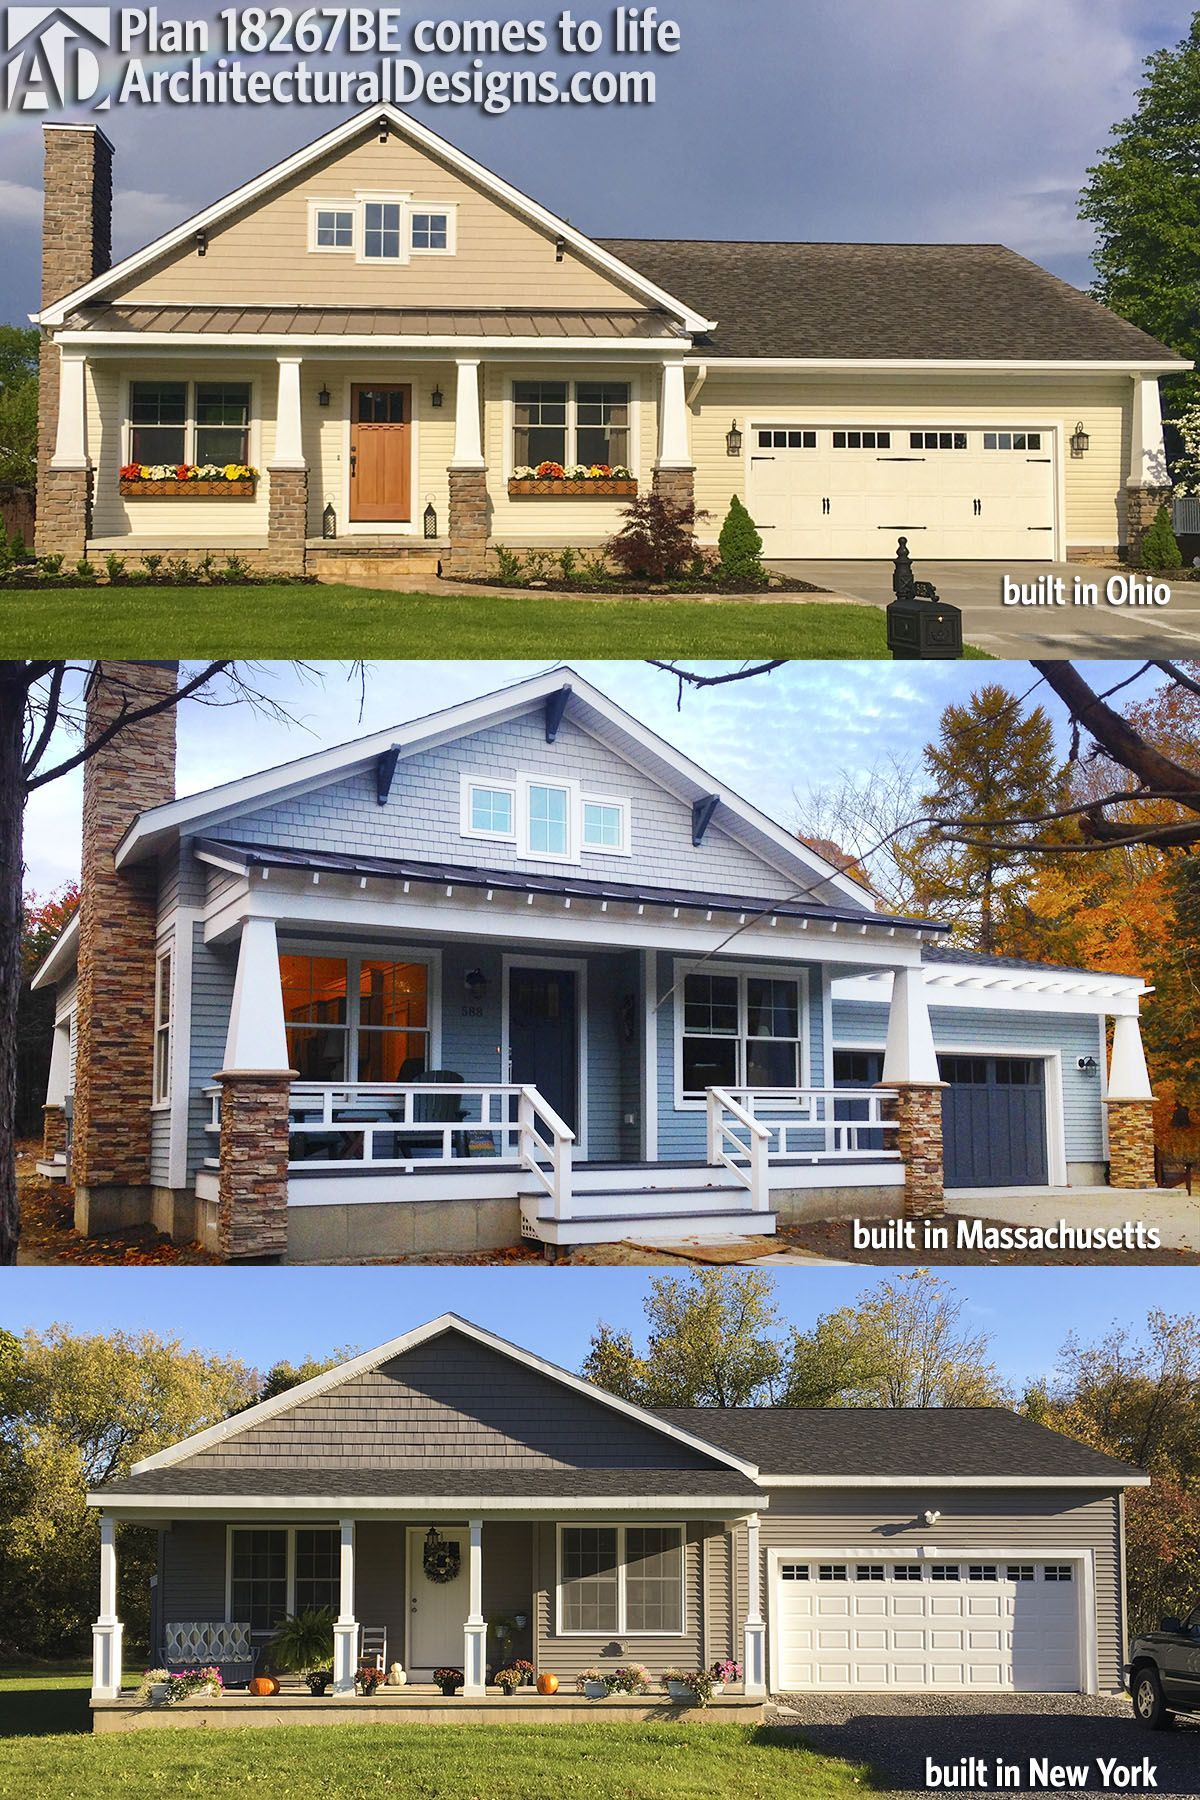 Architectural Designs Bungalow House Plan 18267BE comes